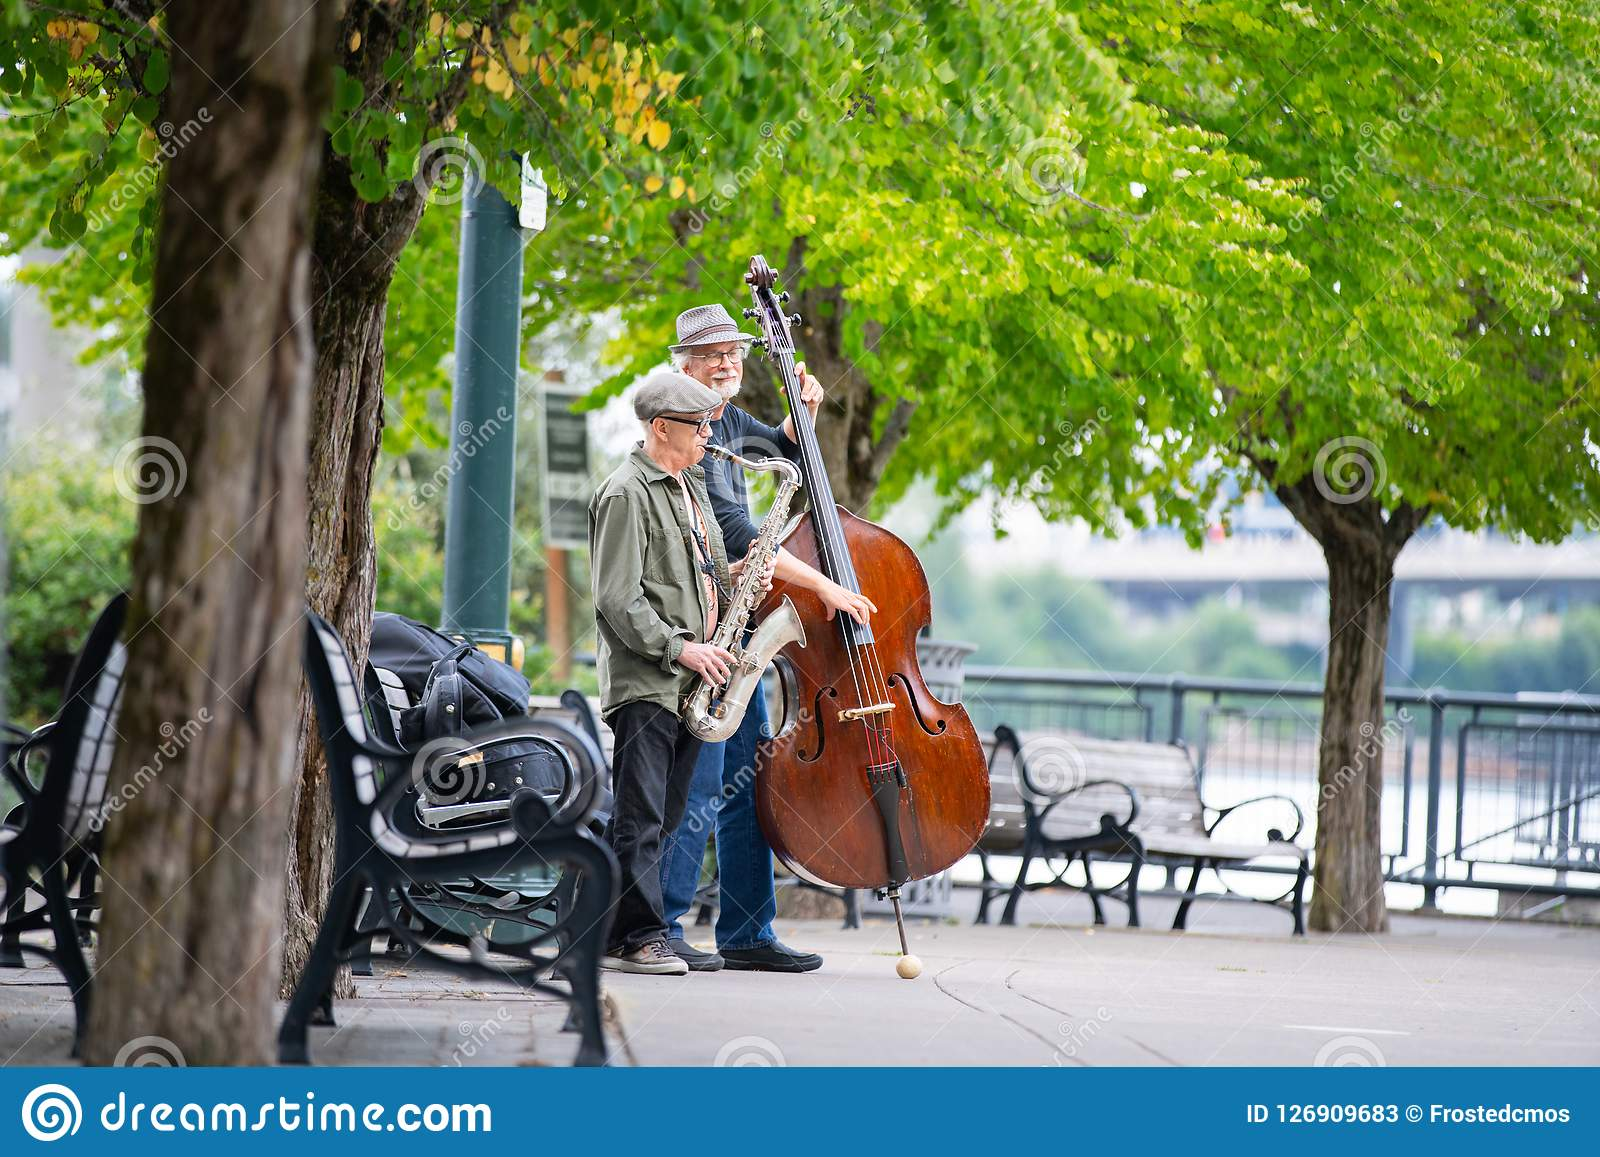 Two elderly gentlemen in a park with musical instruments.